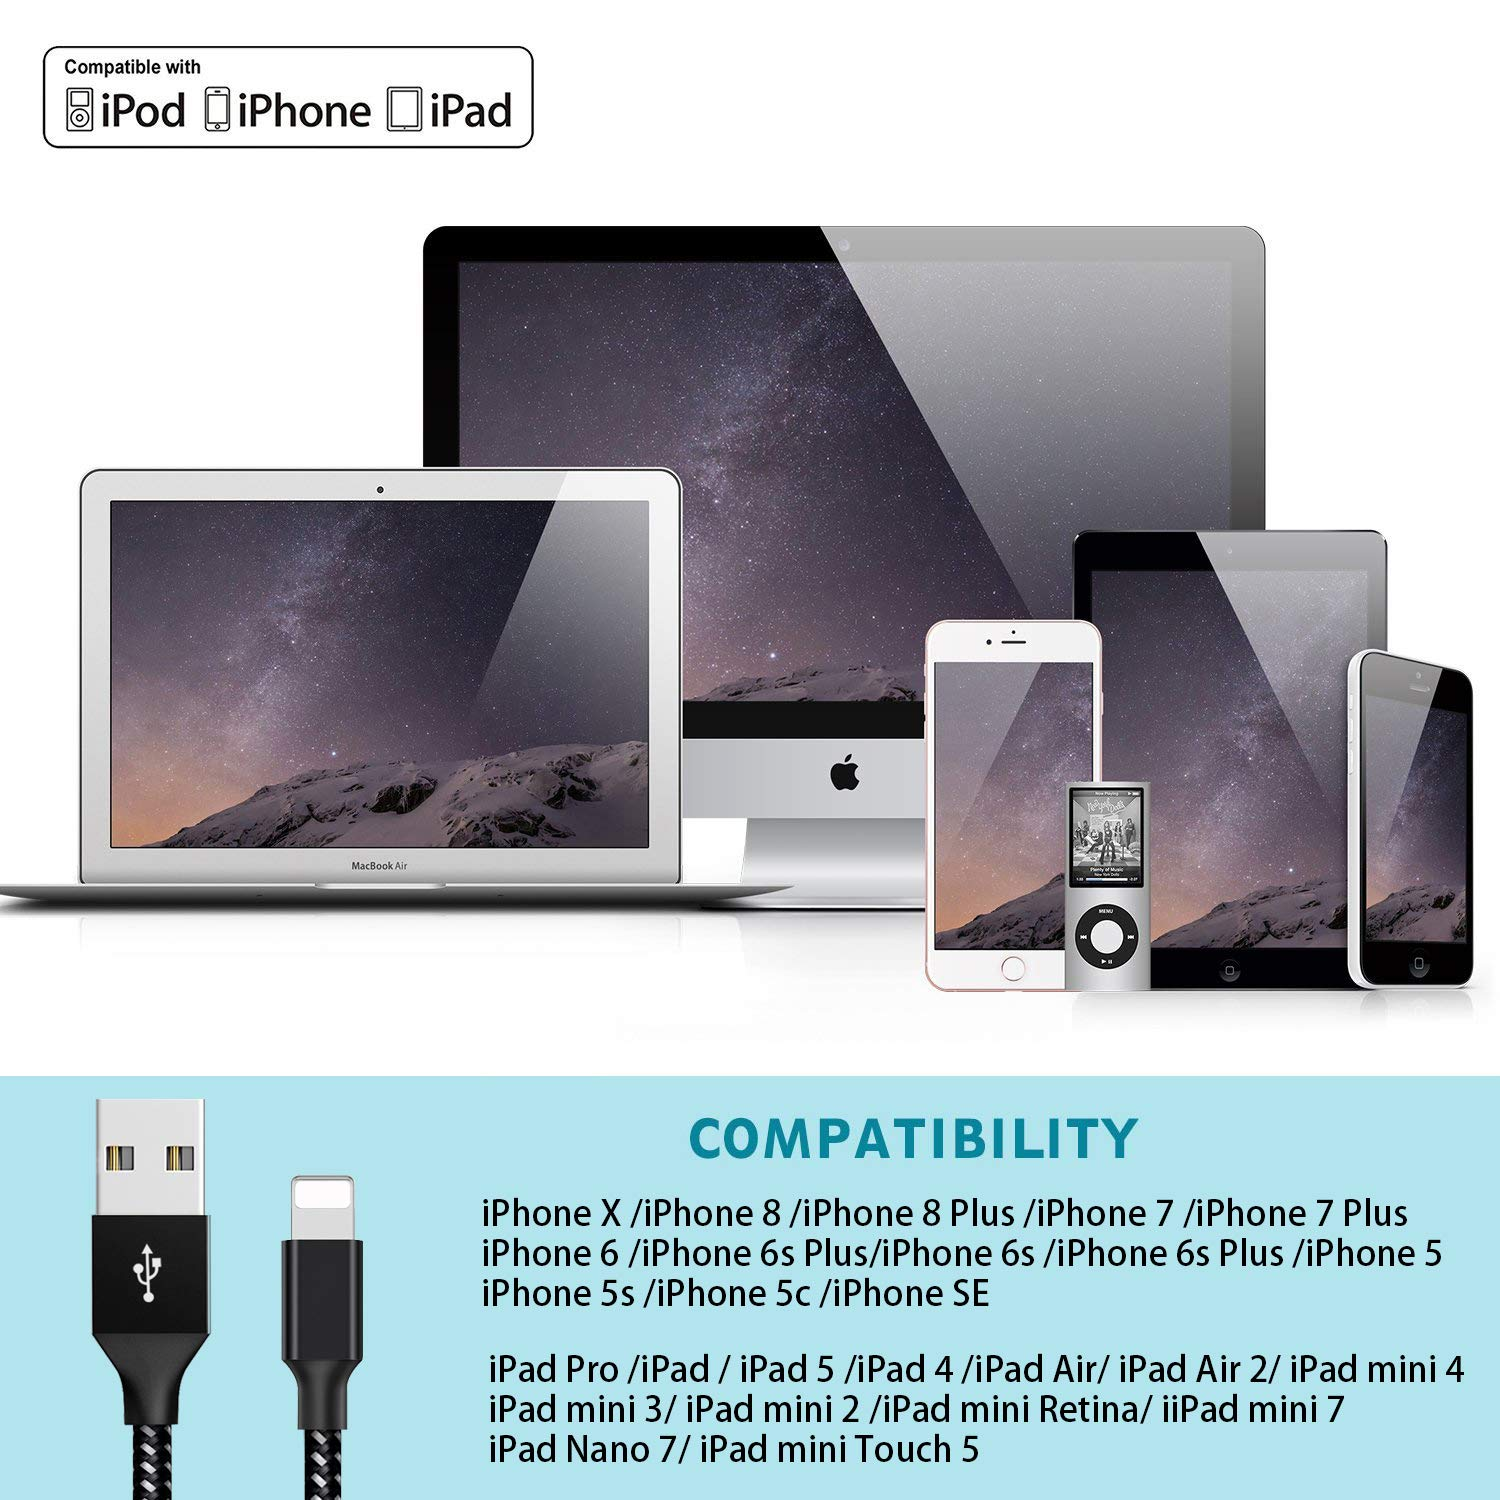 Lightning Cable,WZS iPhone Charger Cables 4Pack 3FT 6FT 6FT 10FT to USB Syncing Data and Nylon Braided Cord Charger for iPhoneX//Xr//8//8Plus//7//7Plus//6//6Plus//6s//6sPlus//5//5s//5c//SE and More